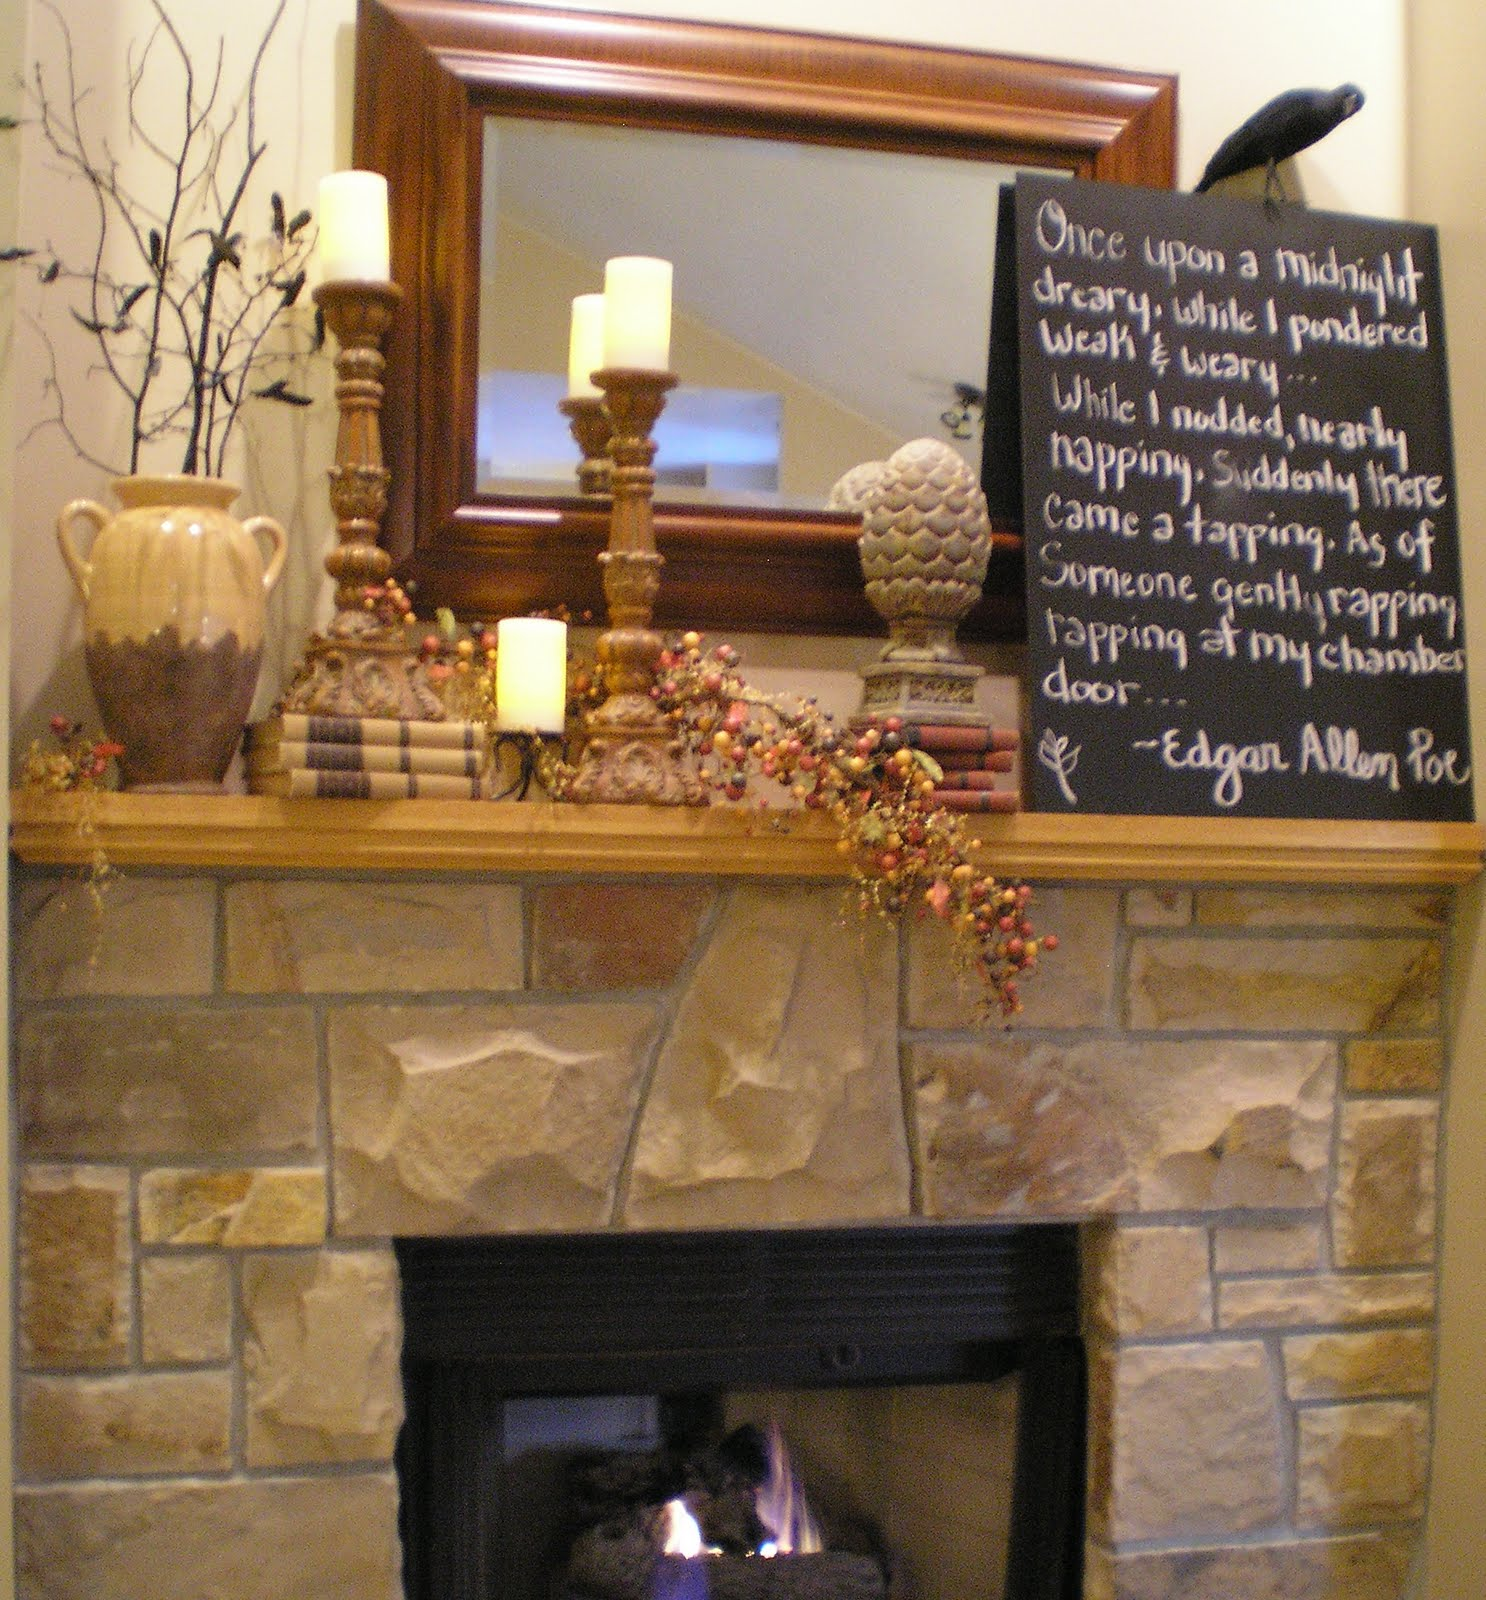 Wip Blog Autumn Mantel Decor Ideas Home Decorators Catalog Best Ideas of Home Decor and Design [homedecoratorscatalog.us]